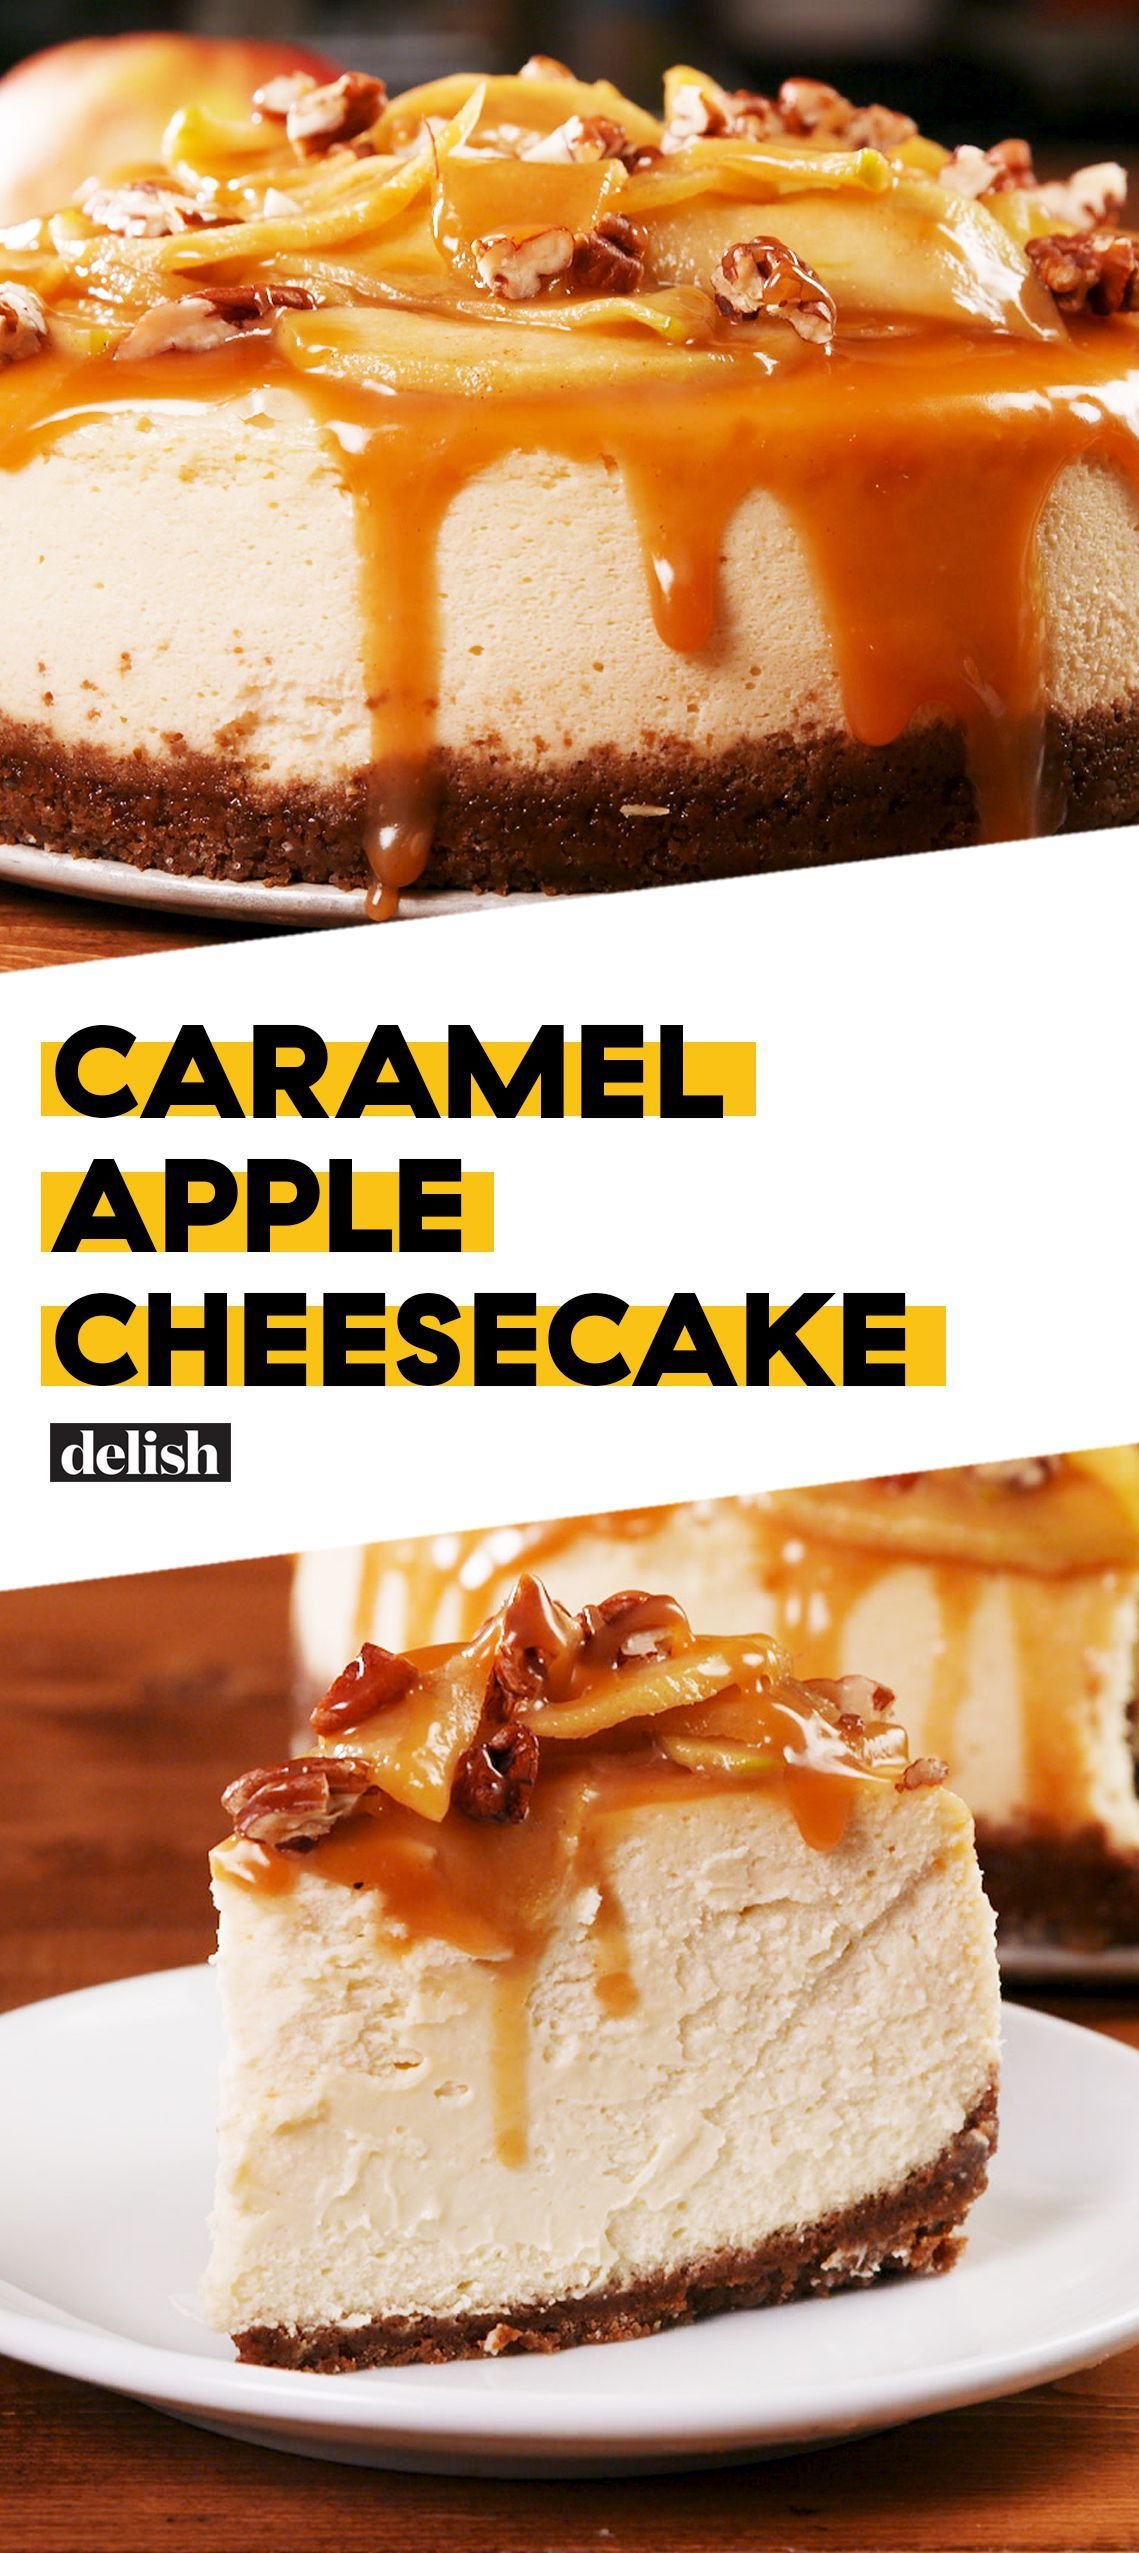 Caramel Apple Cheesecake = Fall Goals #caramelapplecheesecake